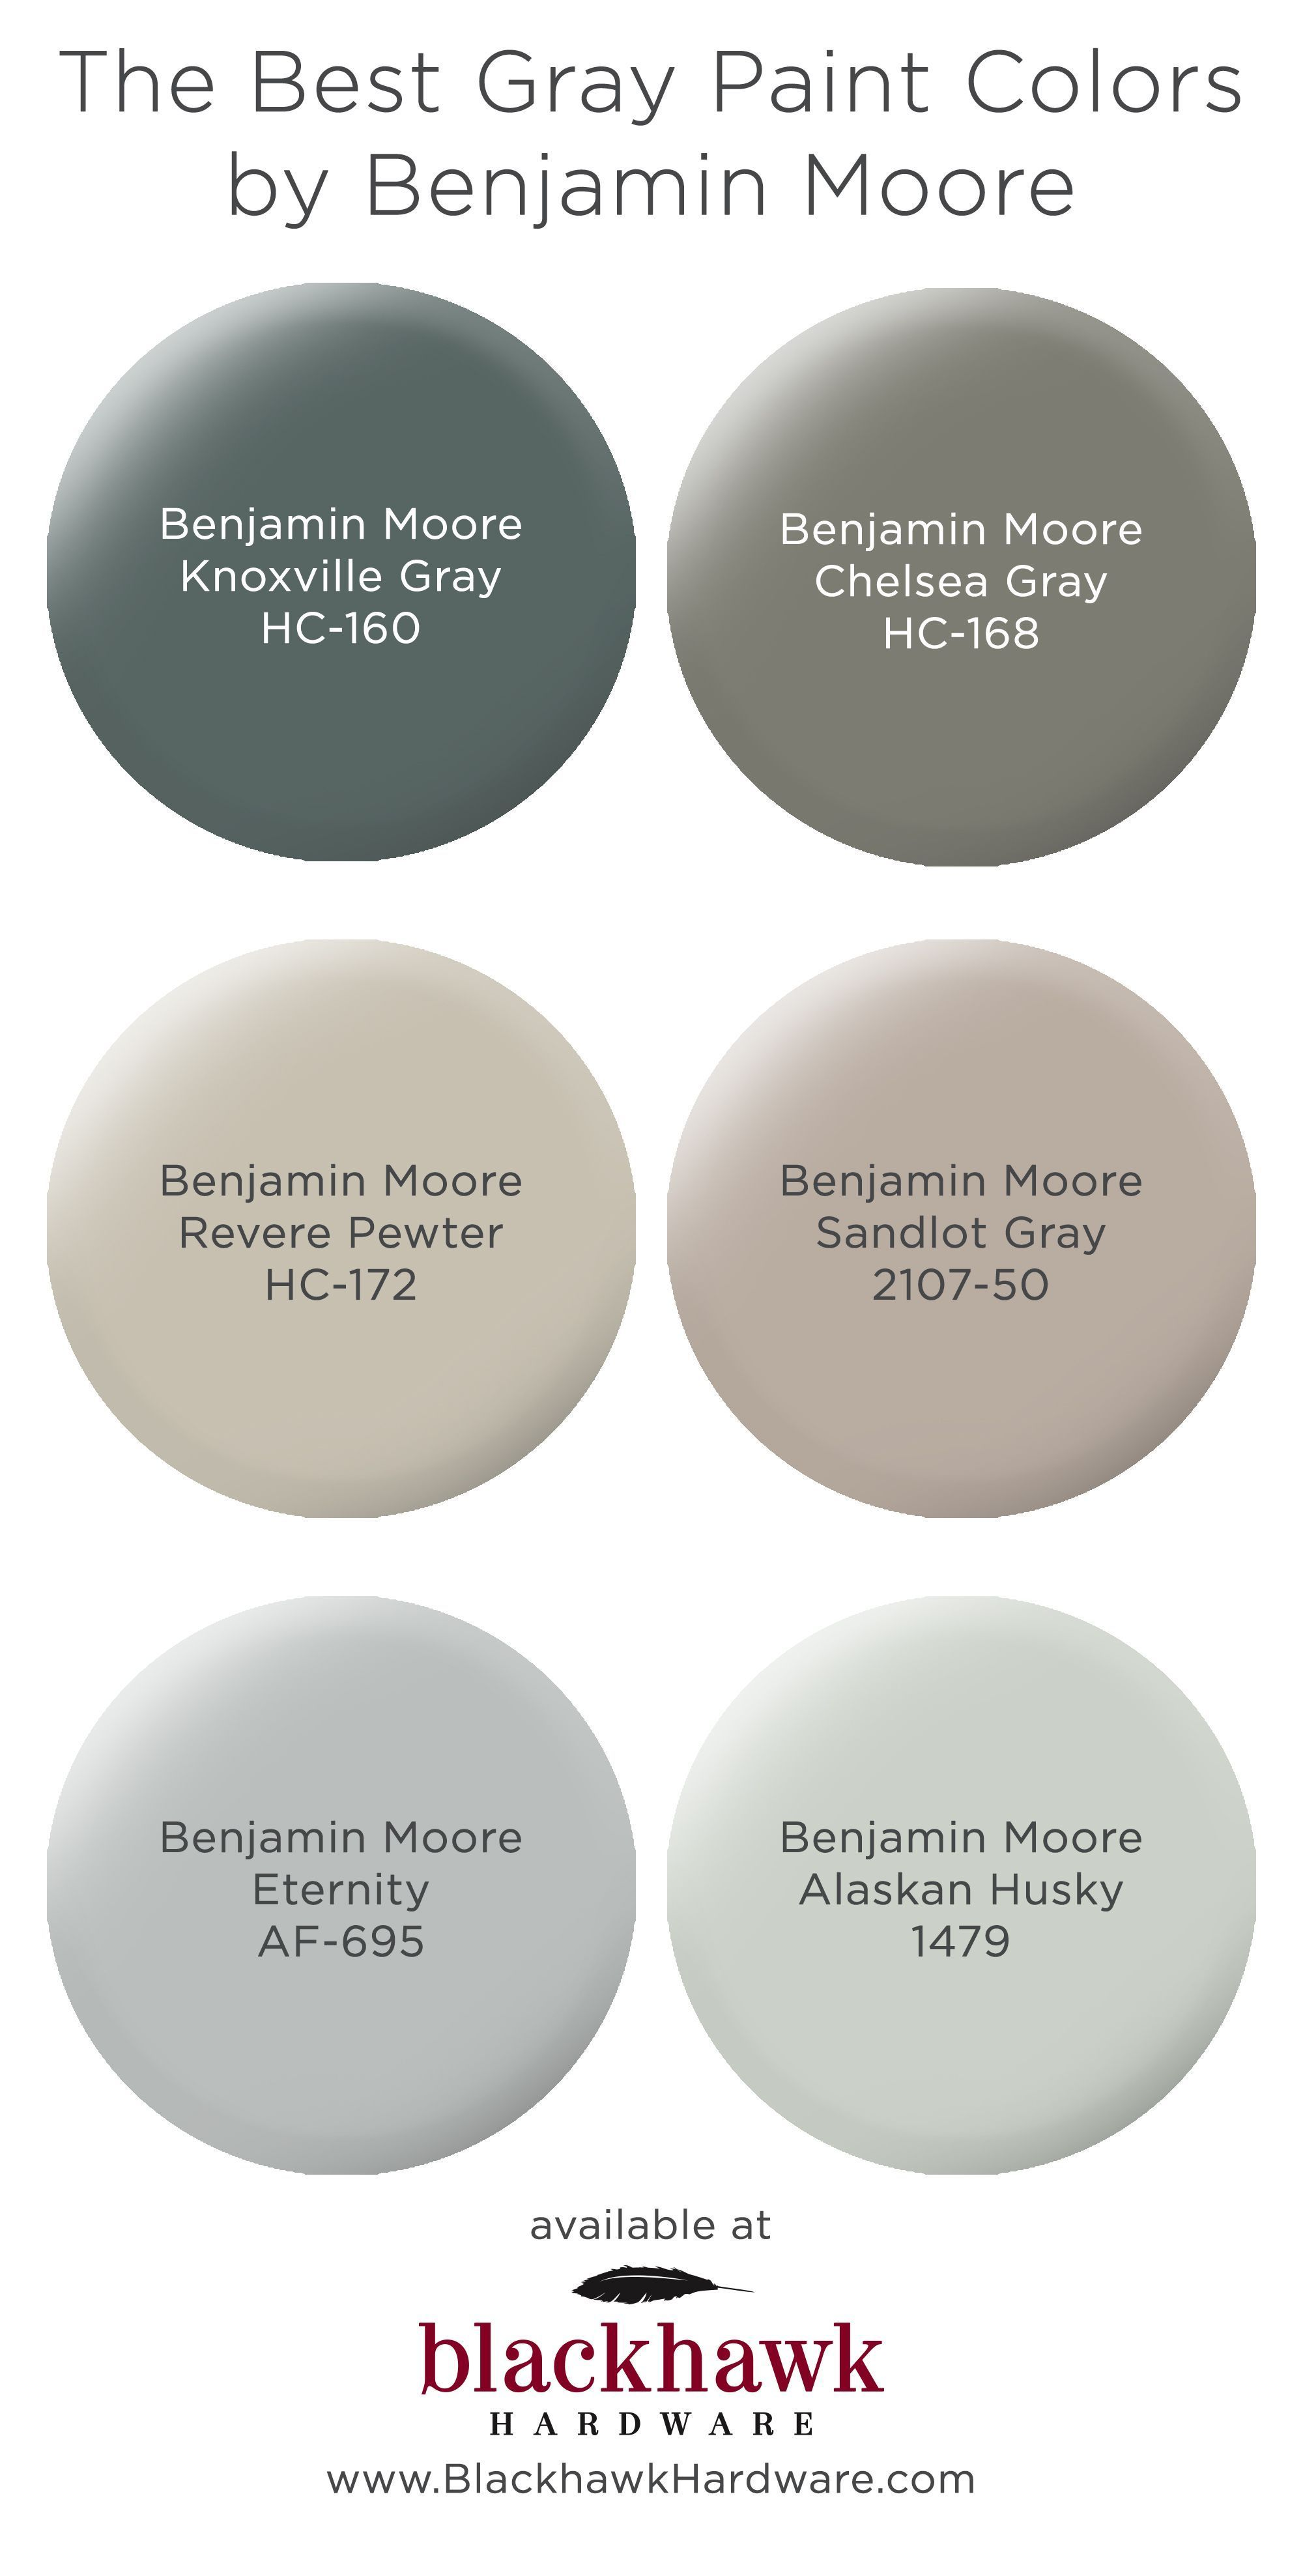 The Best Gray Paint Shades By Benjamin Moore In 2020 Best Gray